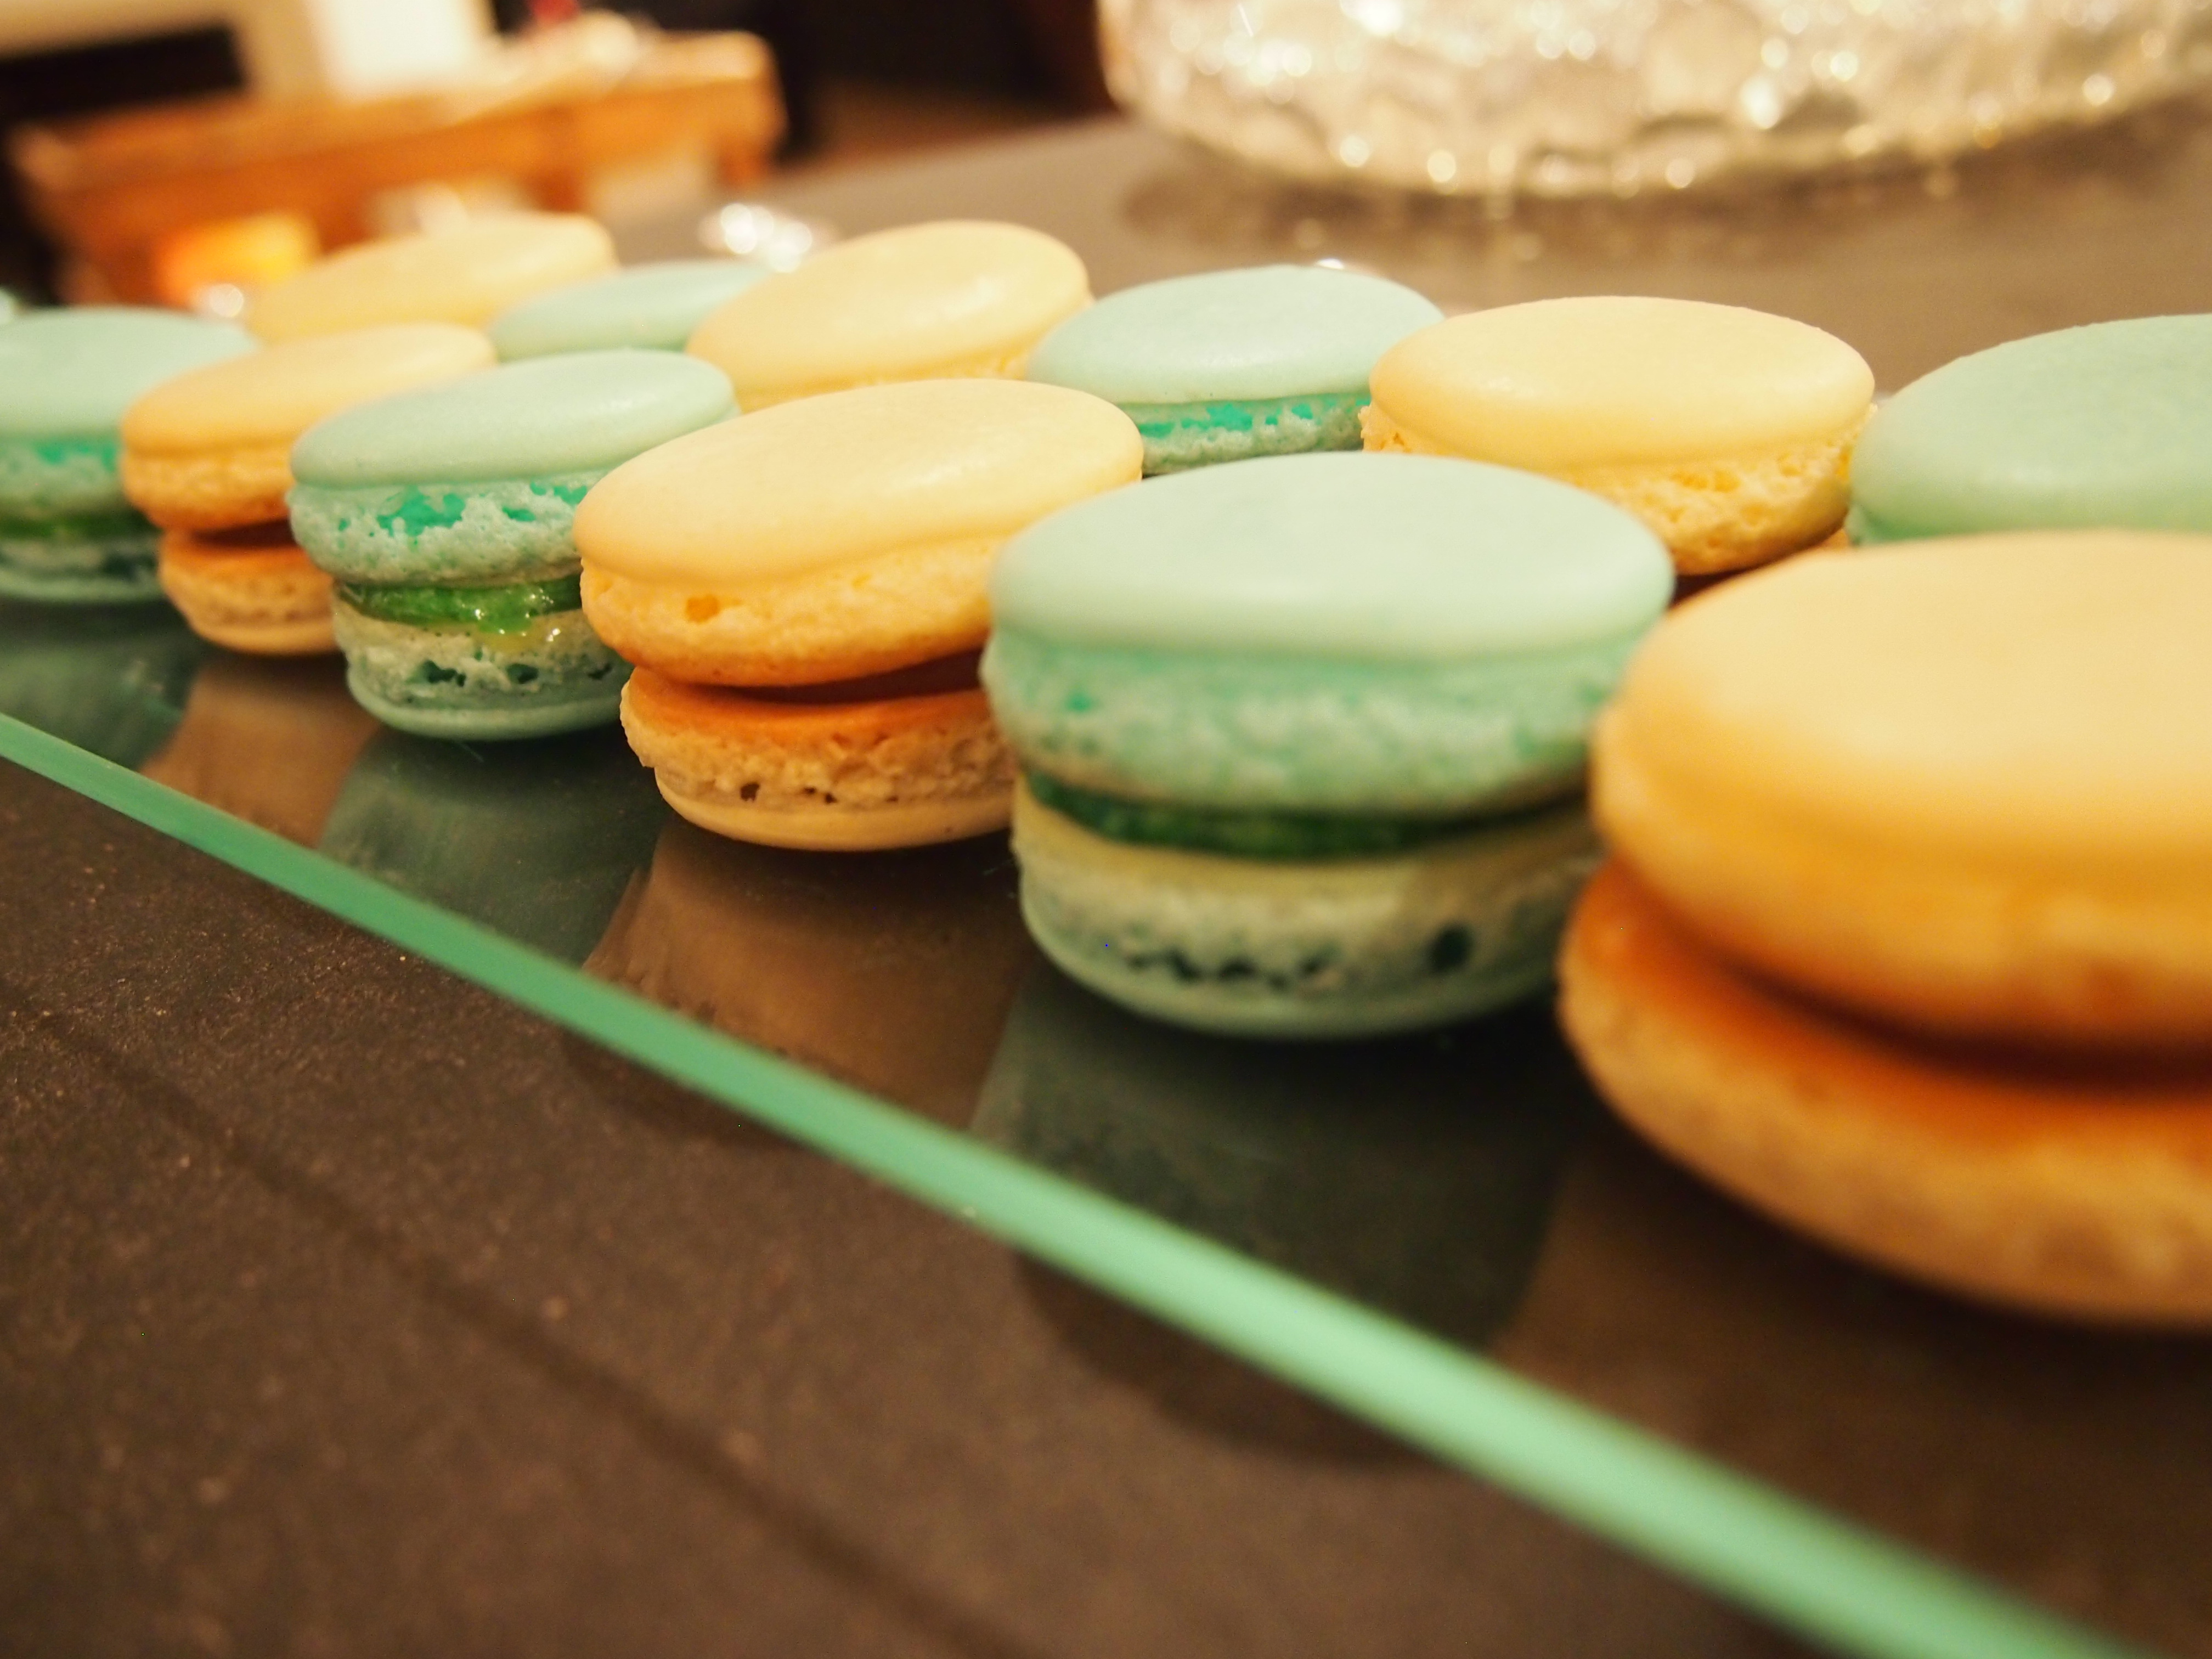 DIY French macarons | CHS Capitol Hill Seattle